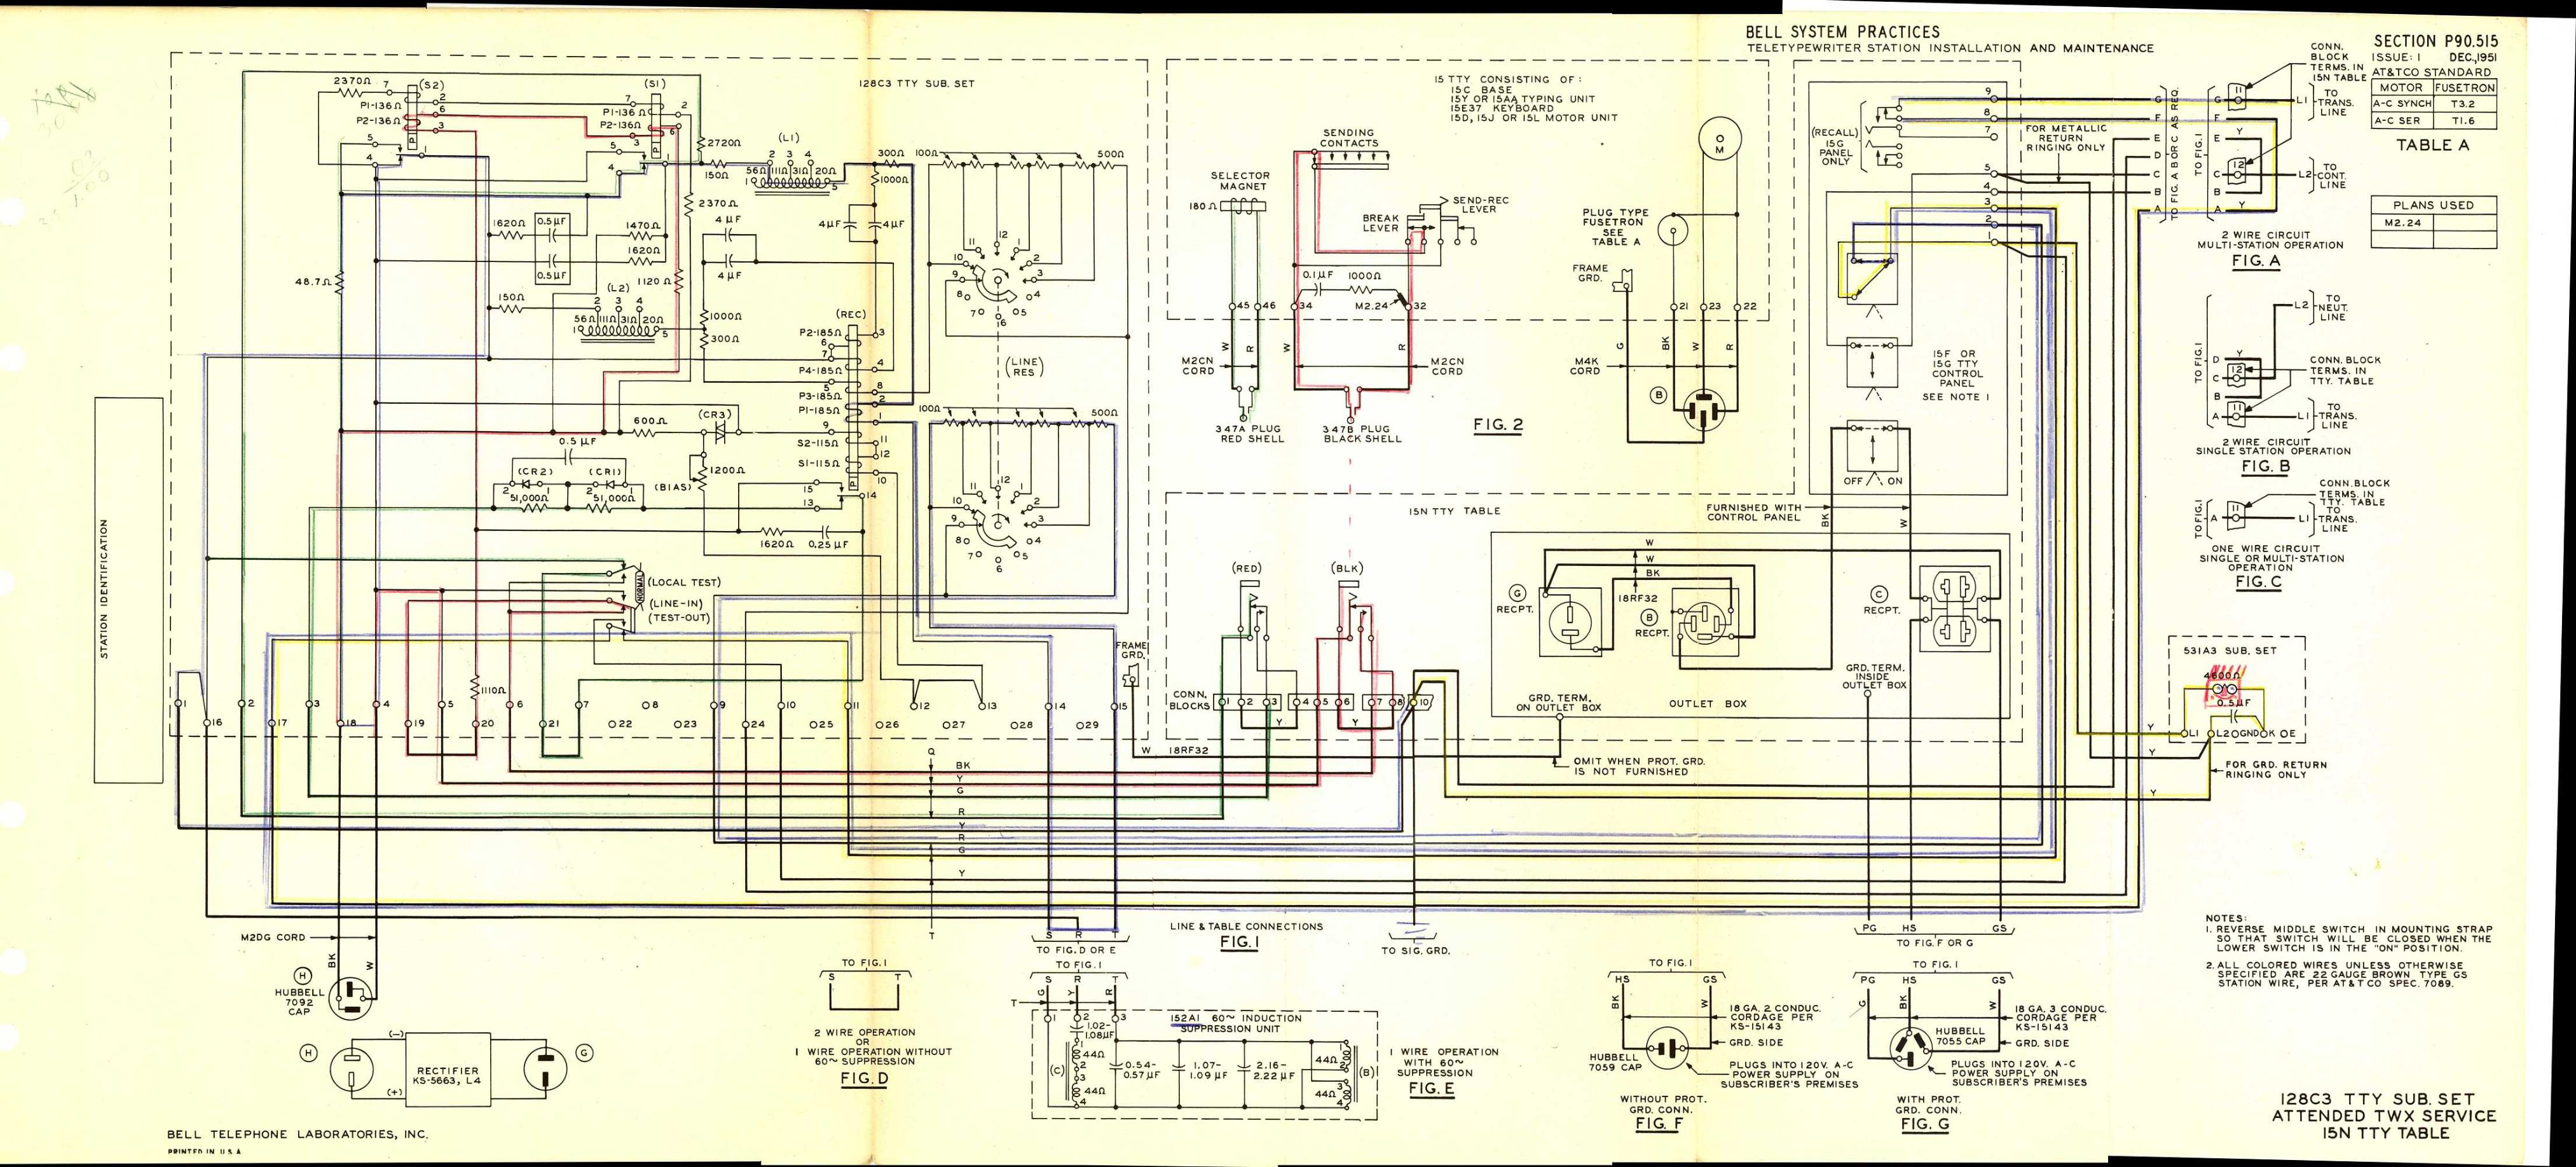 Teletype Wiring Diagrams And Schematics Western Electric 500 Diagram P90515 Link